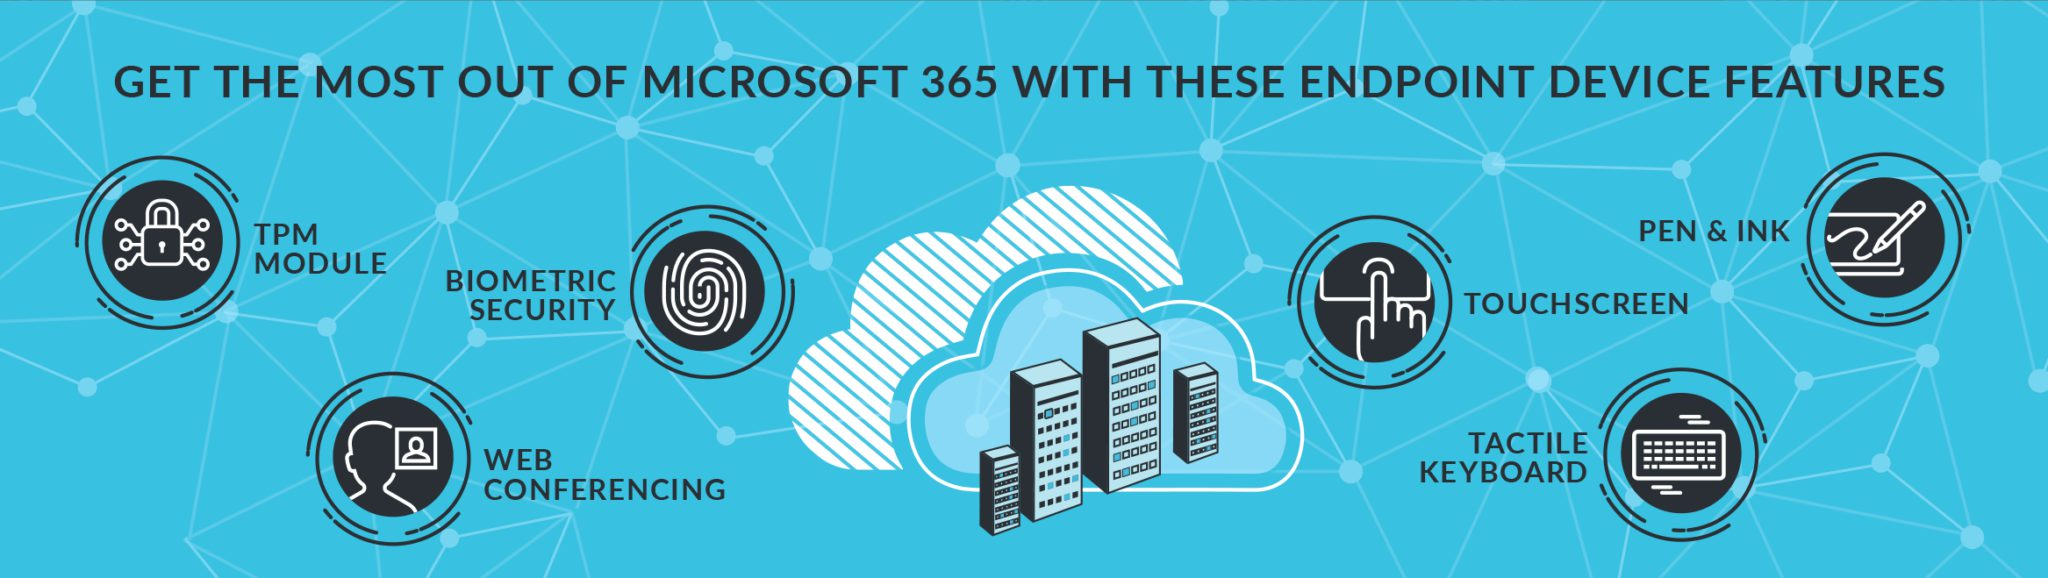 Maximize Your Microsoft 365 Deployment